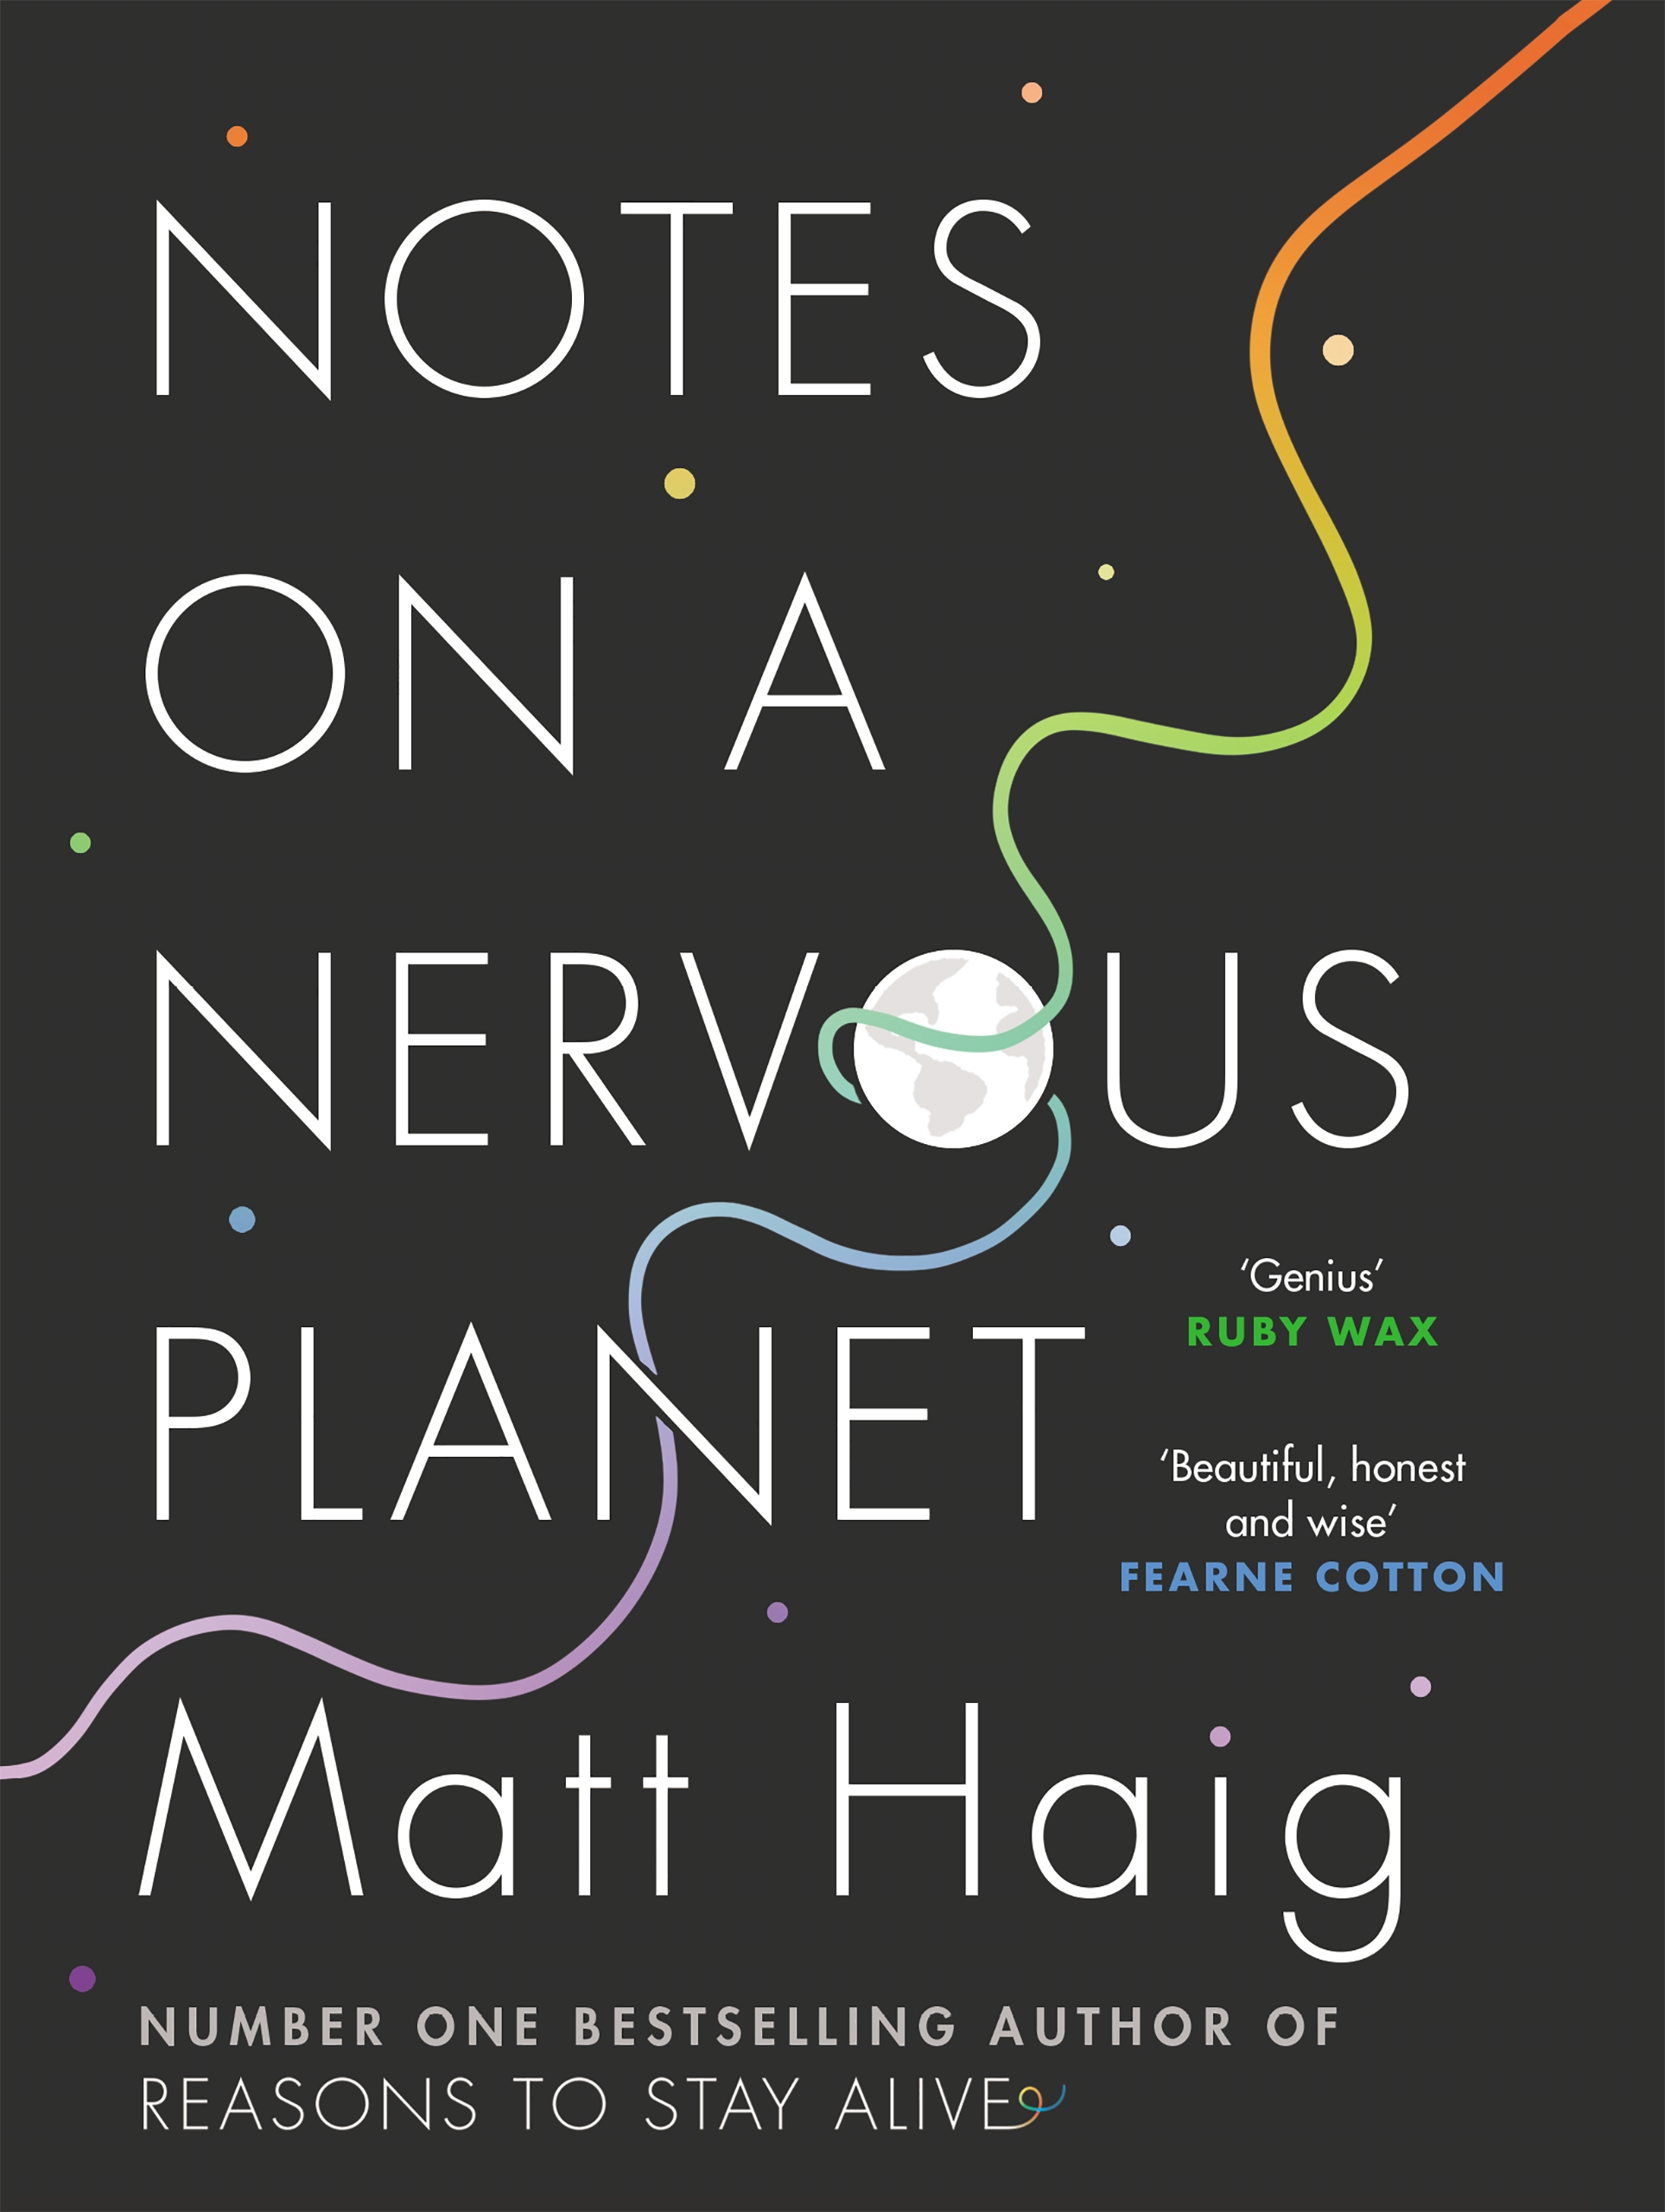 notes-on-a-nervous-planet-hardback-cover-9781786892676.jpg